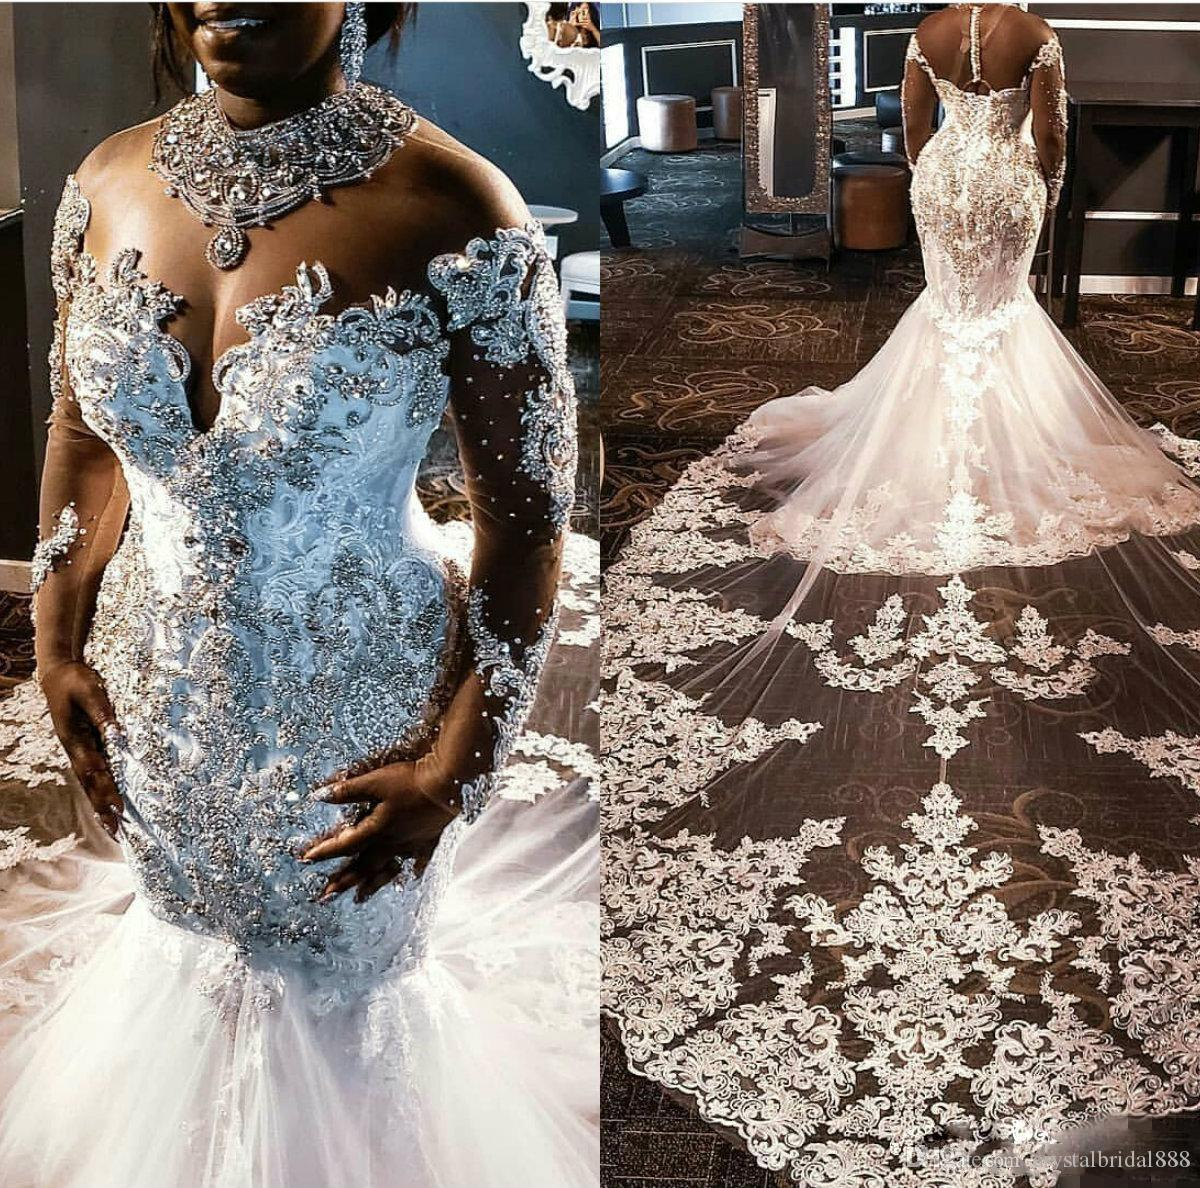 New Luxury Plus Size Mermaid Wedding Dresses Illusion High Neck Lace Appliques Crystal Beaded Long Sleeves Bling Long Formal Bridal Gowns Wedding Dress Designer Wedding Gown Designers From Crystalbridal888 375 88 Dhgate Com